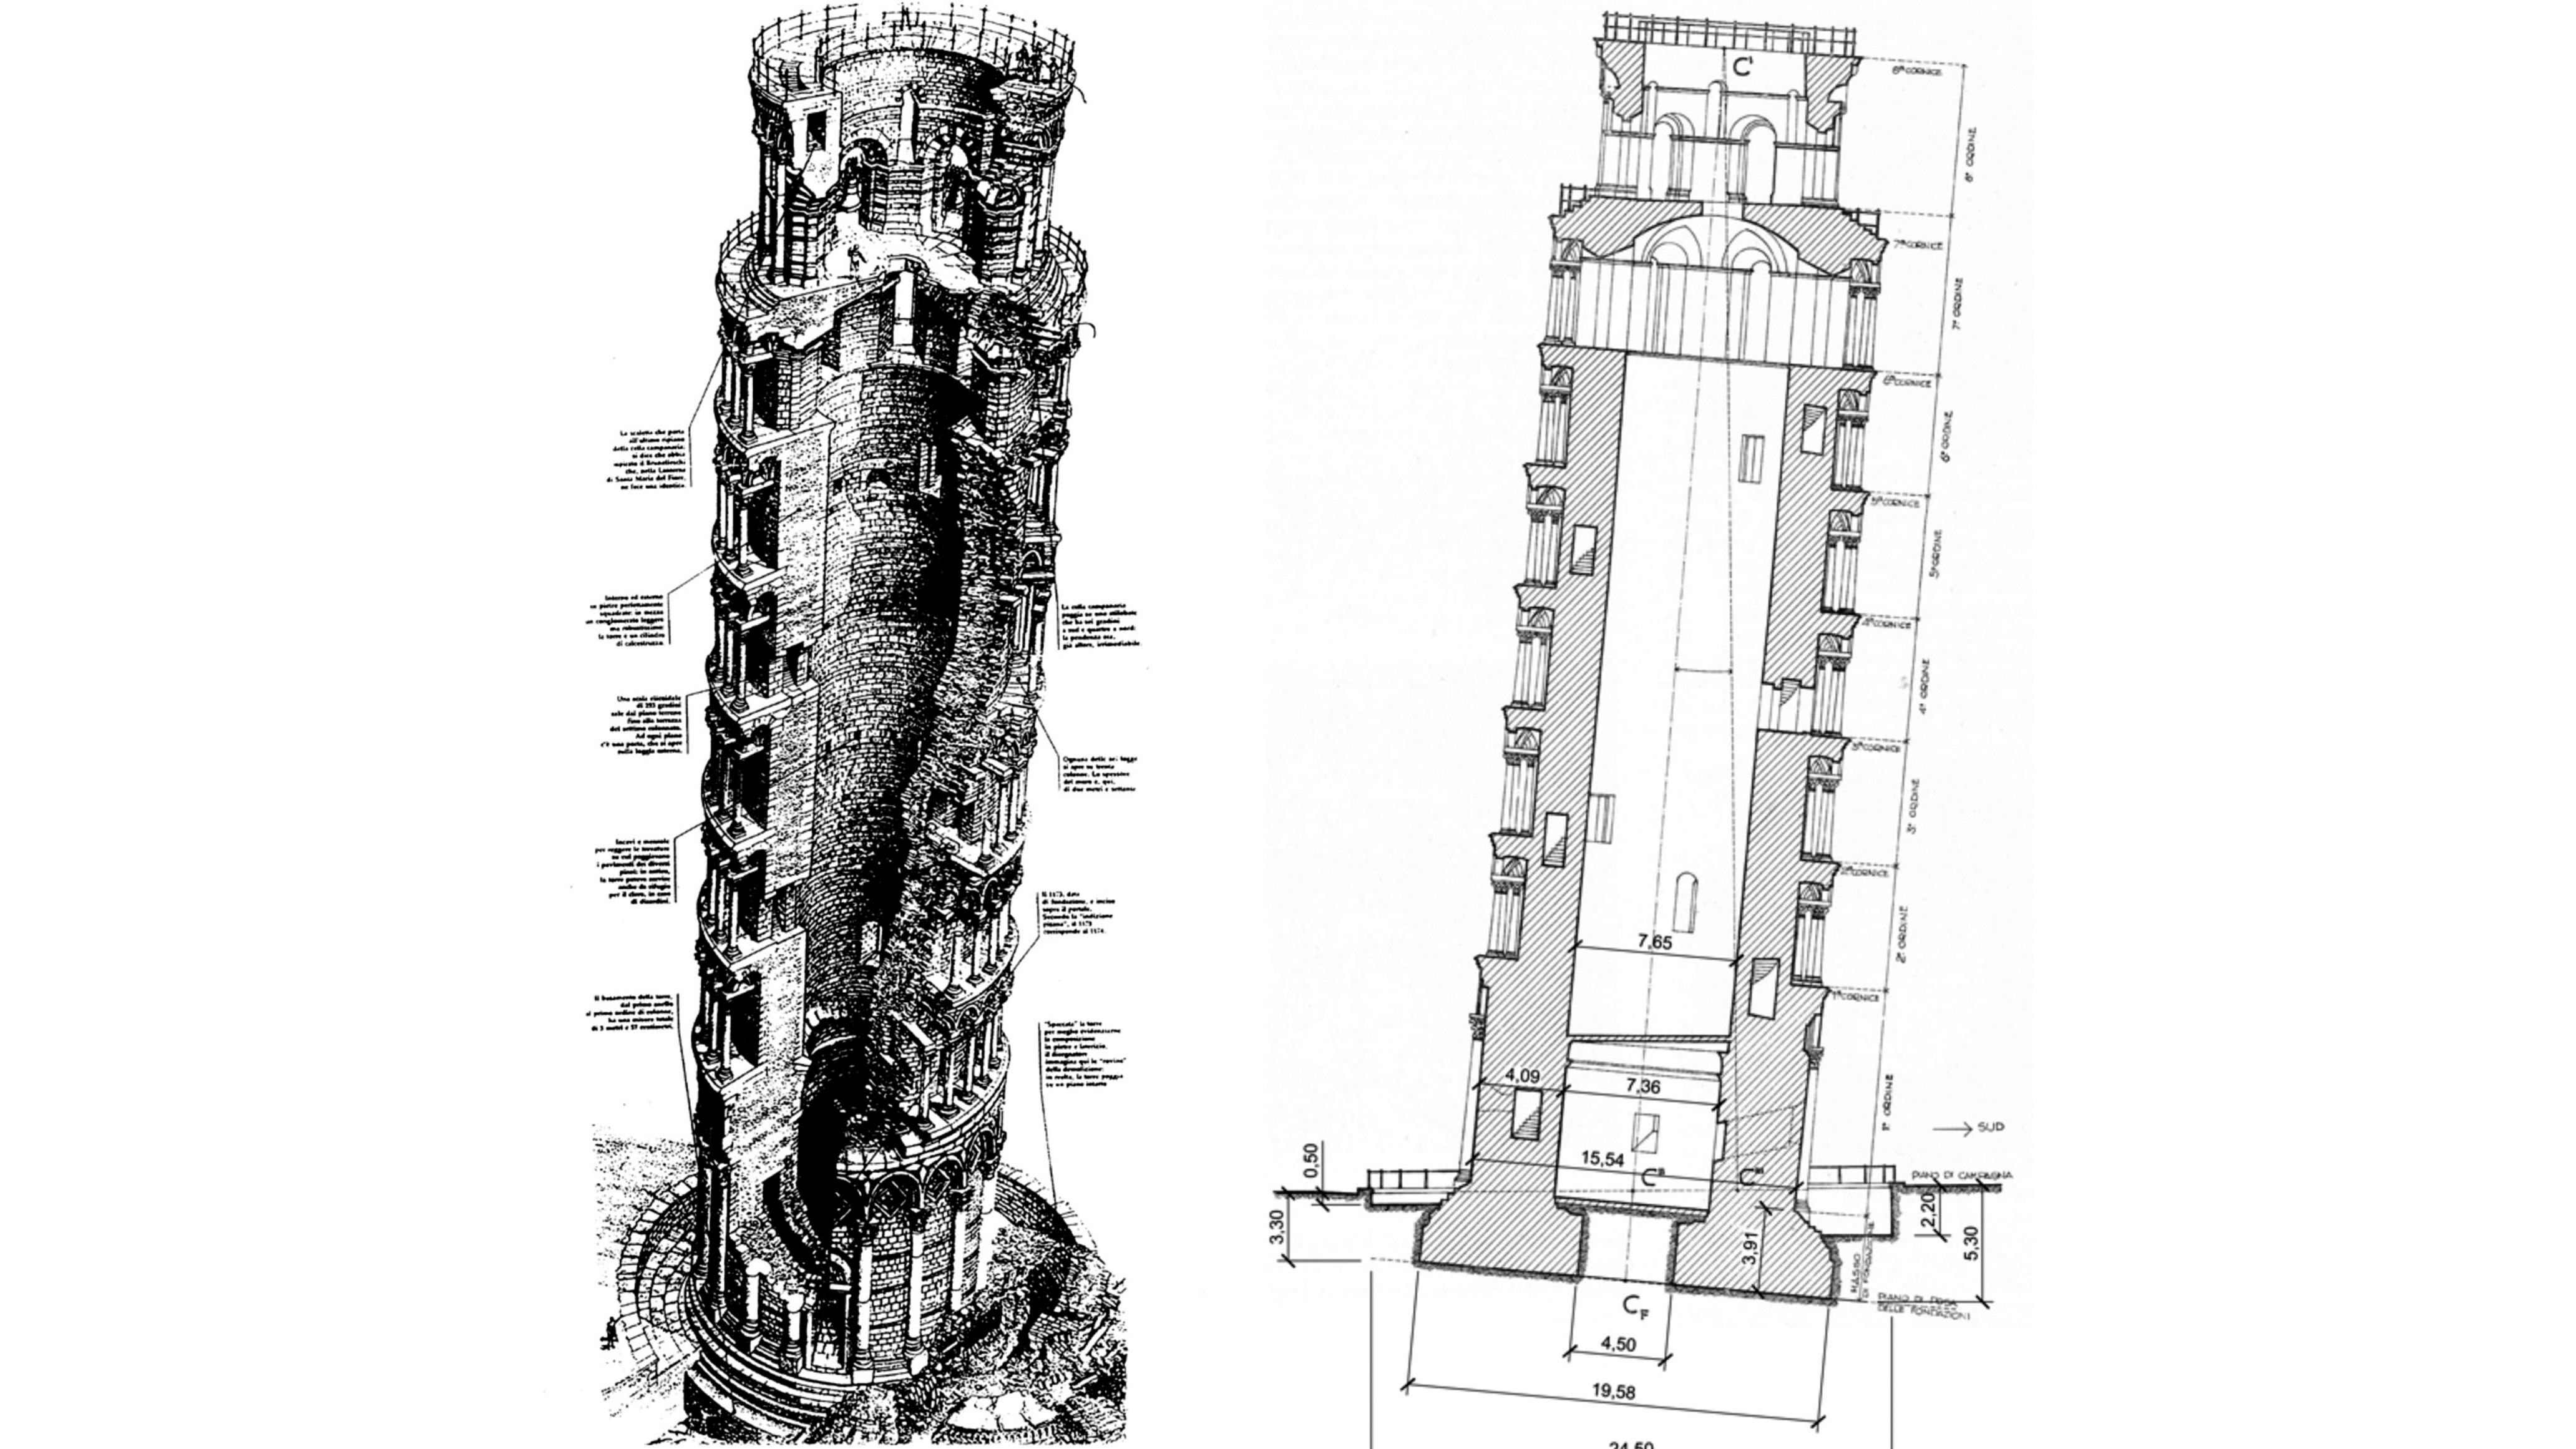 The restoration of the LEANING TOWER OF PISA | Trevi 3